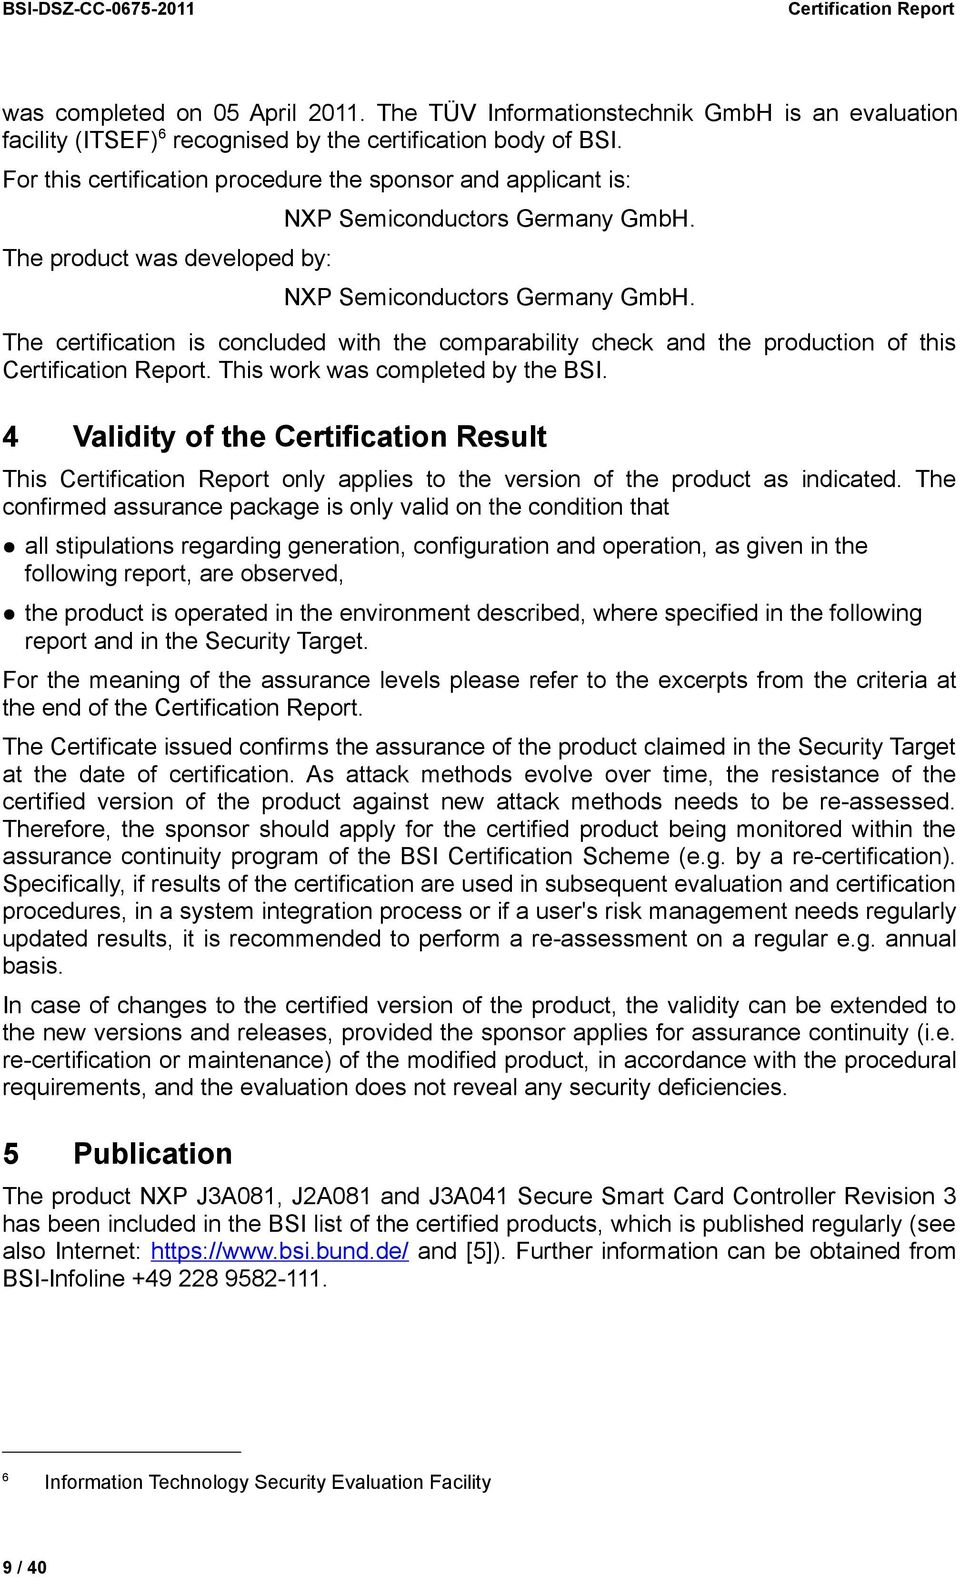 NXP Semiconductors Germany GmbH. The certification is concluded with the comparability check and the production of this Certification Report. This work was completed by the BSI.